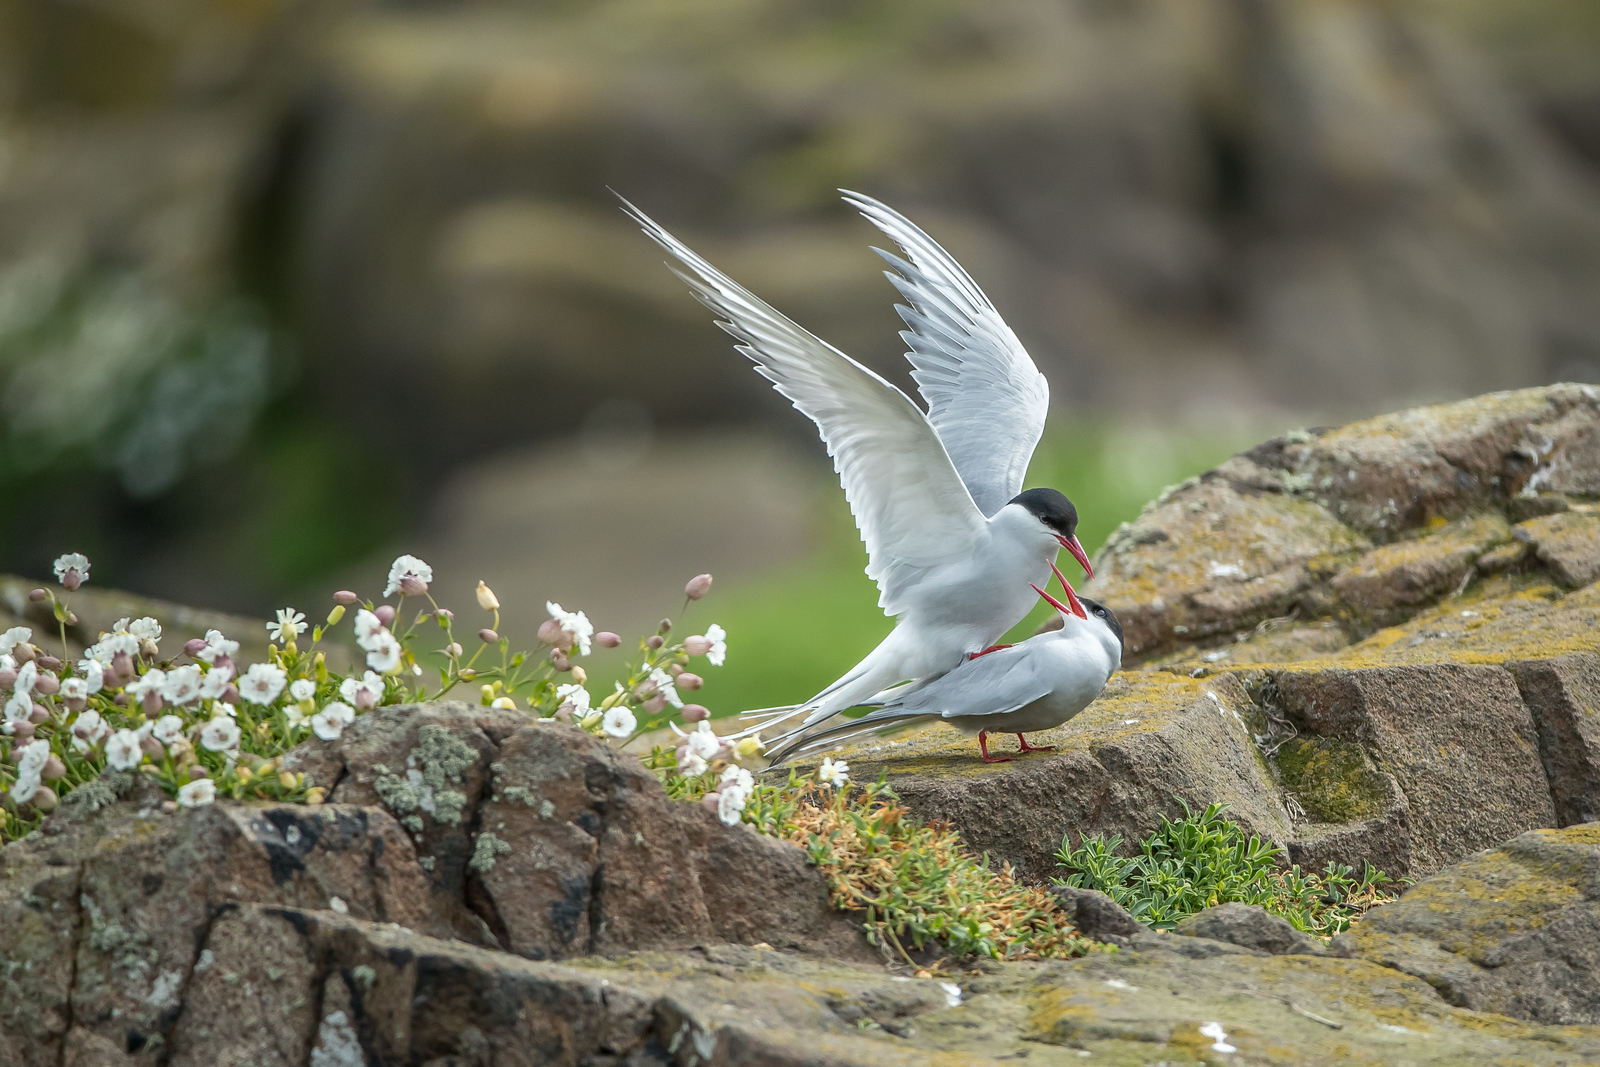 Common Tern mating